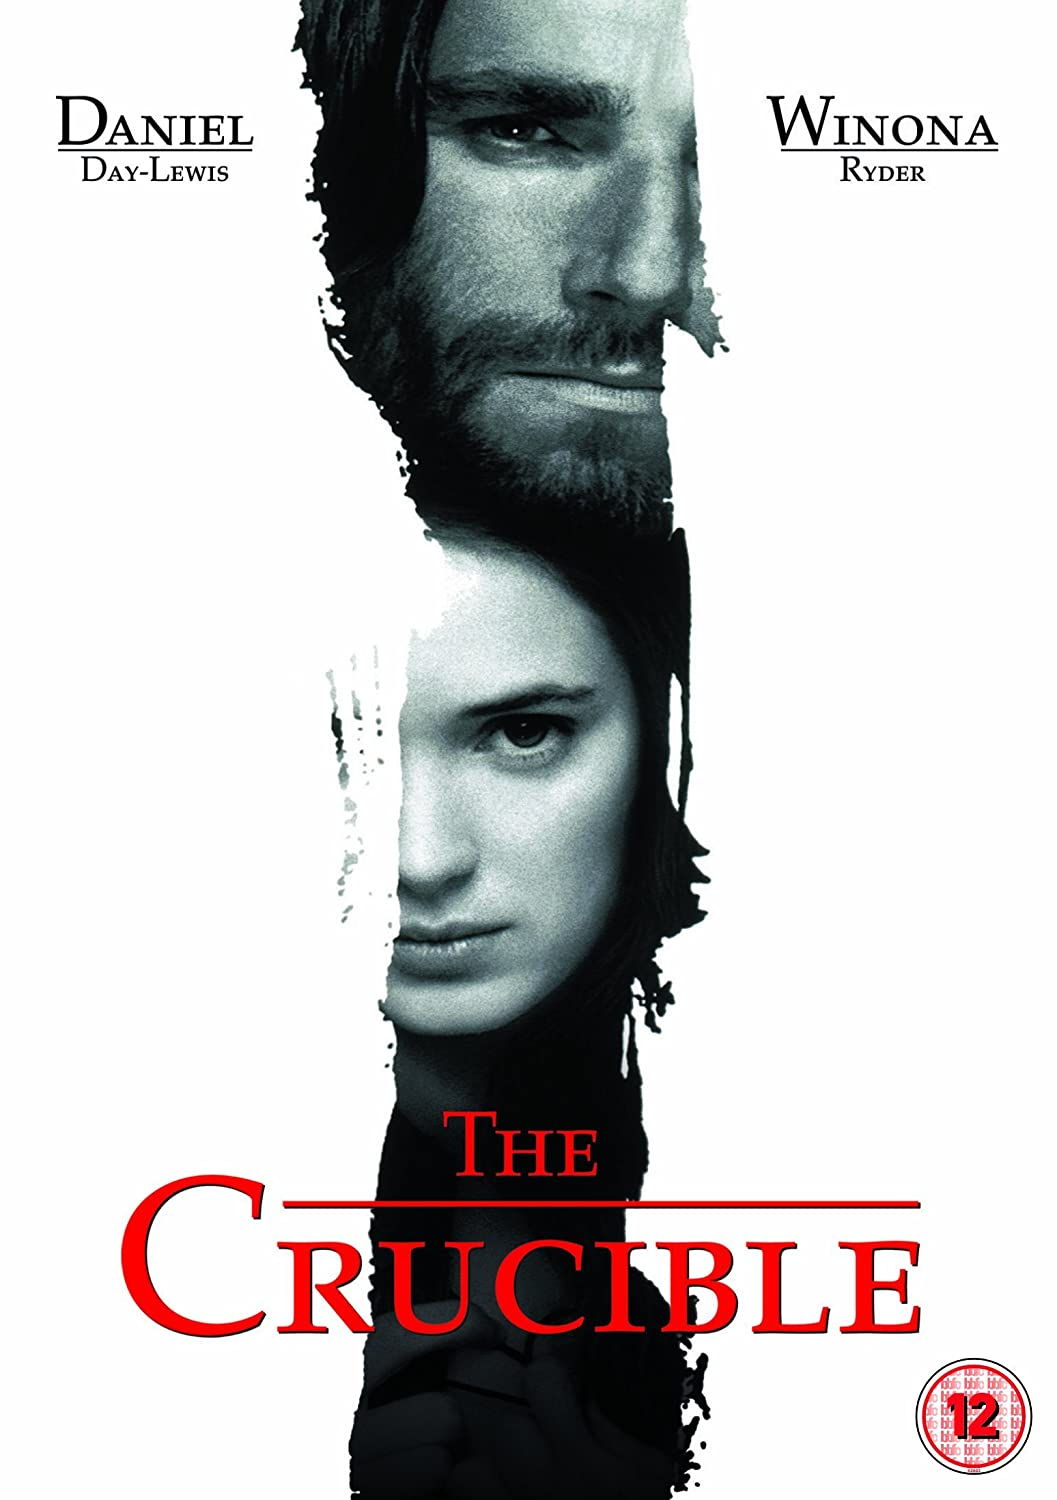 com the crucible dvd daniel day lewis winona  com the crucible dvd 1996 daniel day lewis winona ryder joan allen paul scofield bruce davison nicholas hytner arthur miller movies tv